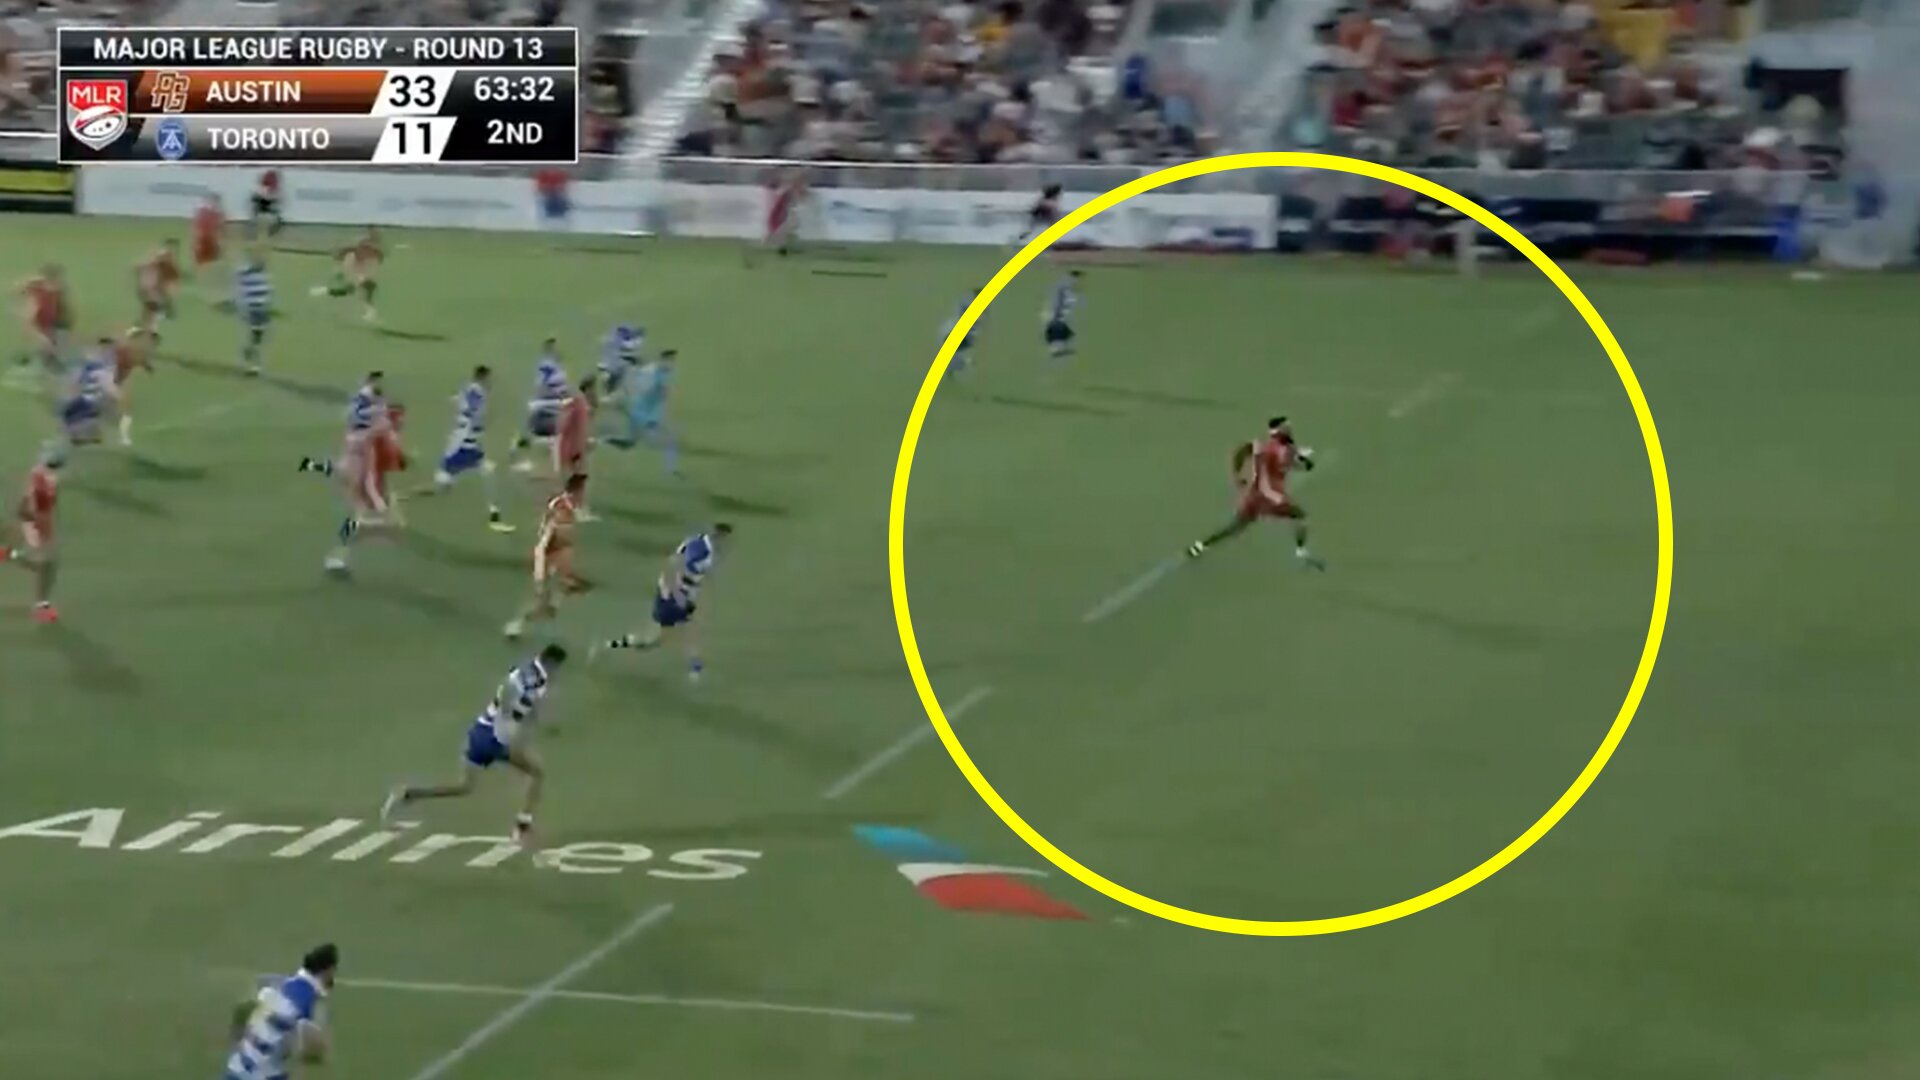 Prop in Major League Rugby amazes crowd with 60 metre power break from own half